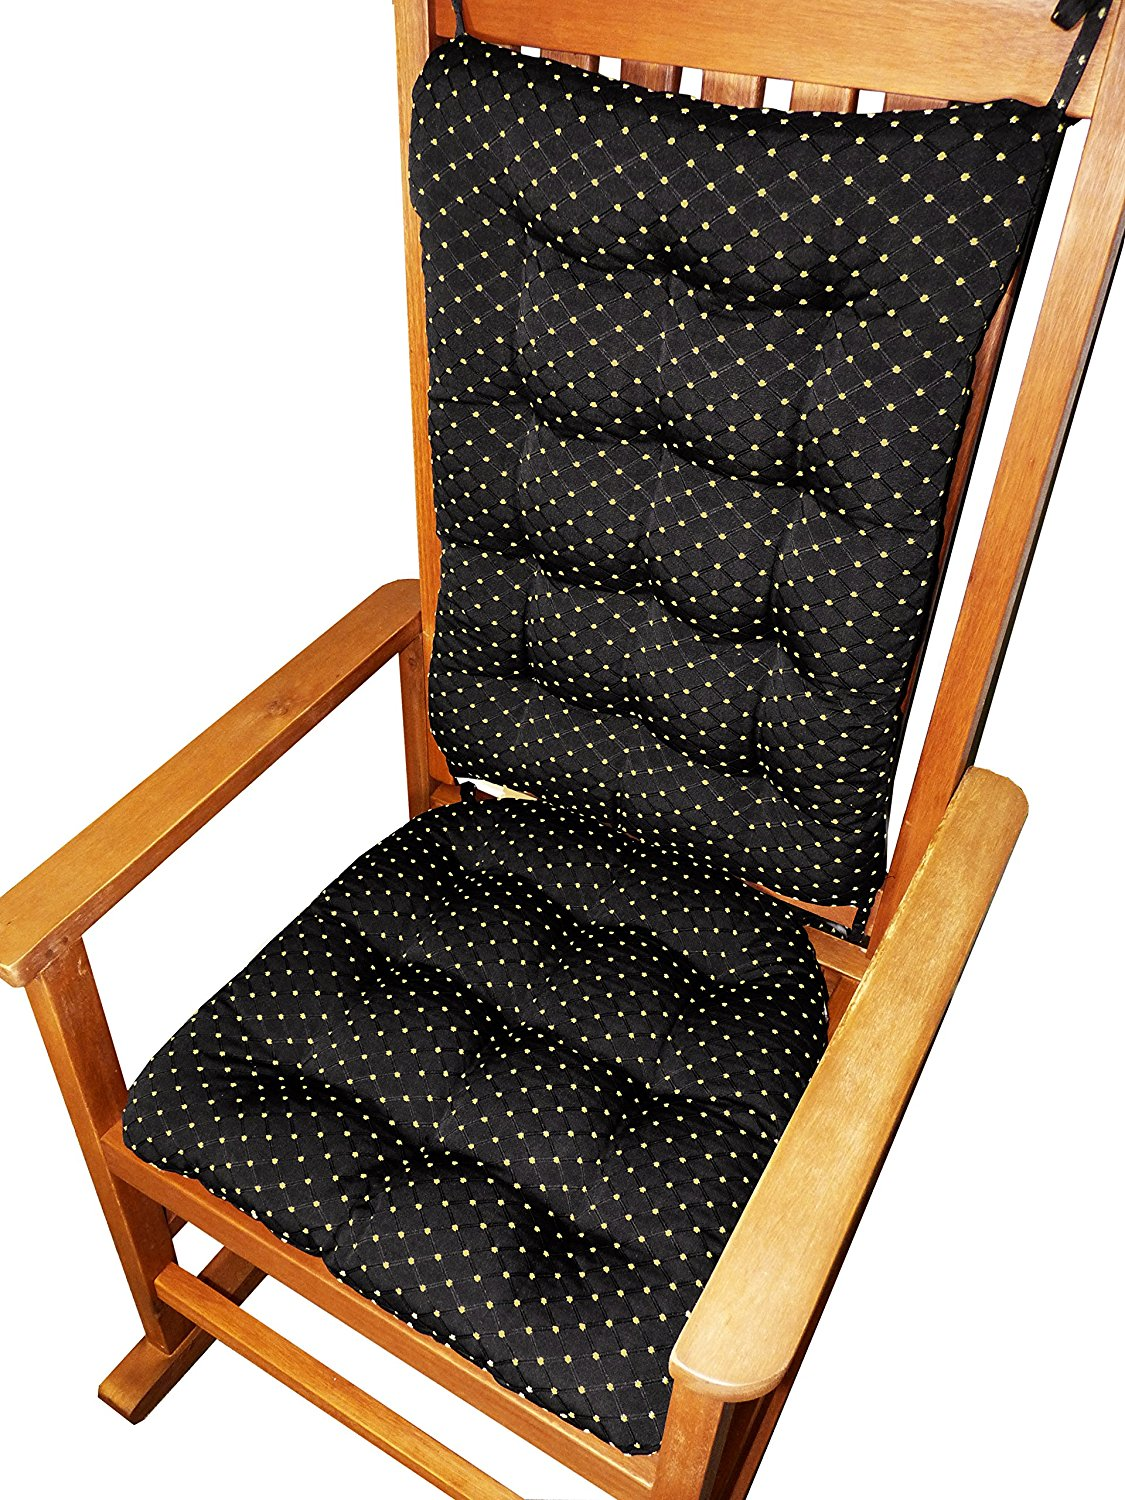 Rocking Chair Cushion | Cushions for Rocking Chairs | Rocking Chair Back Cushion